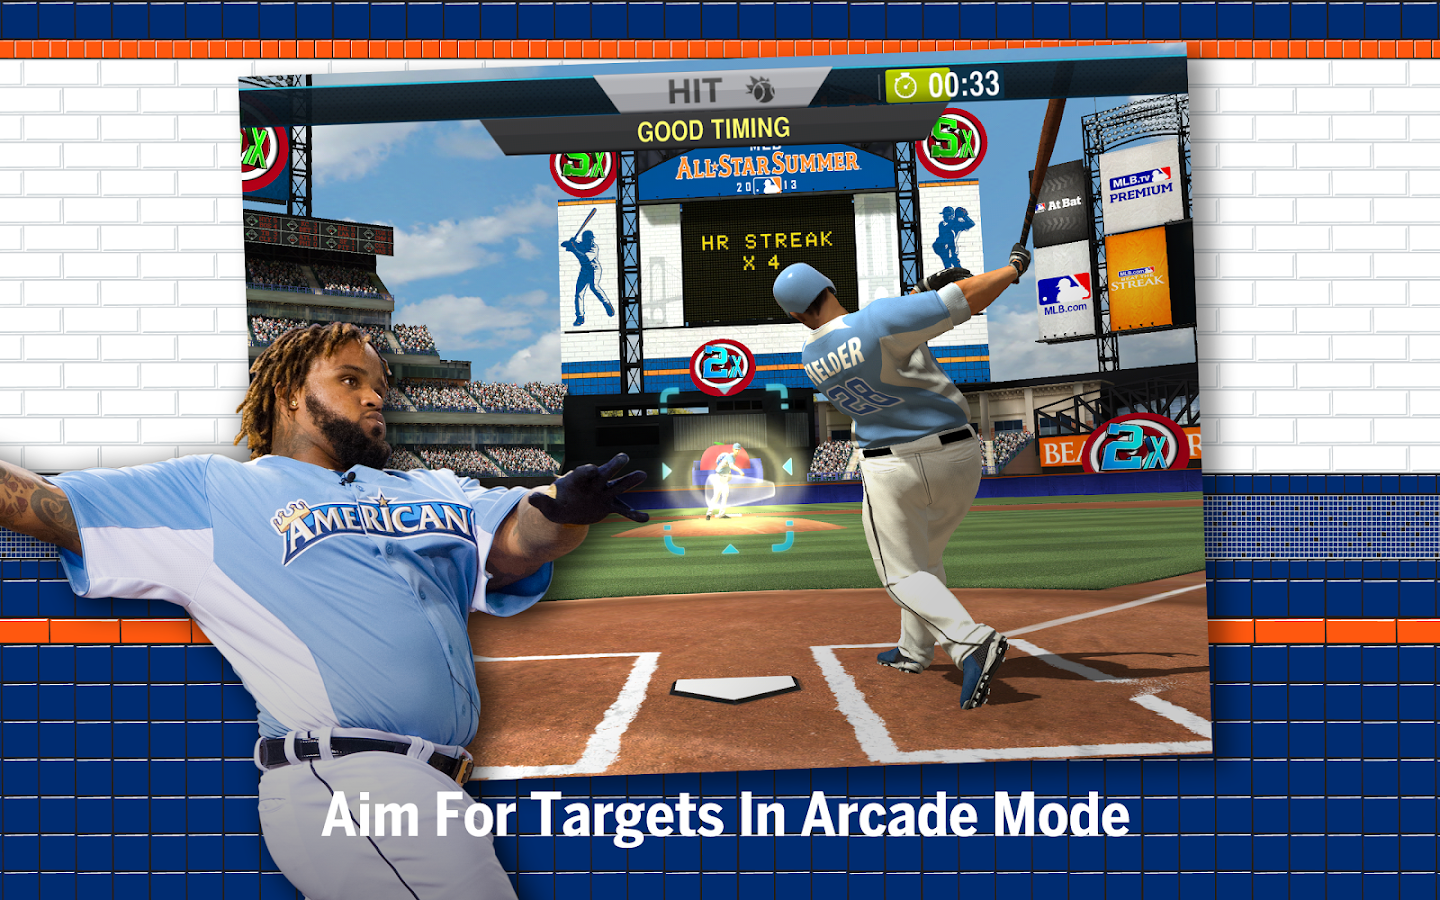 Descargar MLB.com Home Run Derby v1.1.149820 Mod (Monedas ilimitadas) apk Android Full Gratis (Gratis)